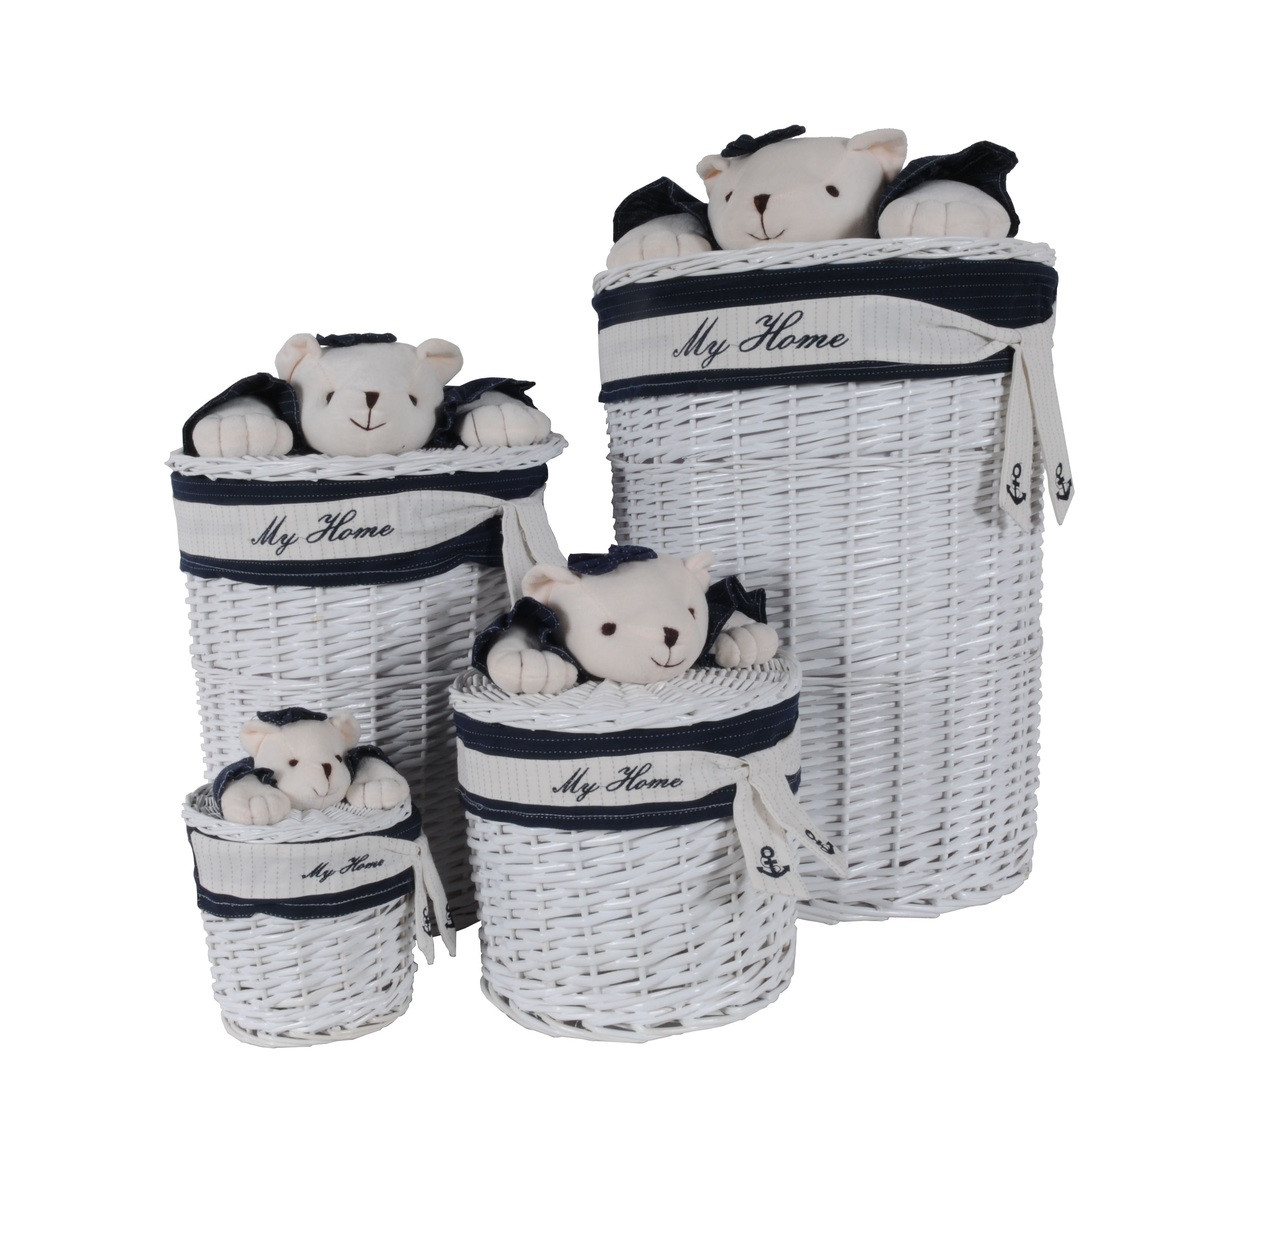 Oval Willow Baskets with Bear Design - Set of 4